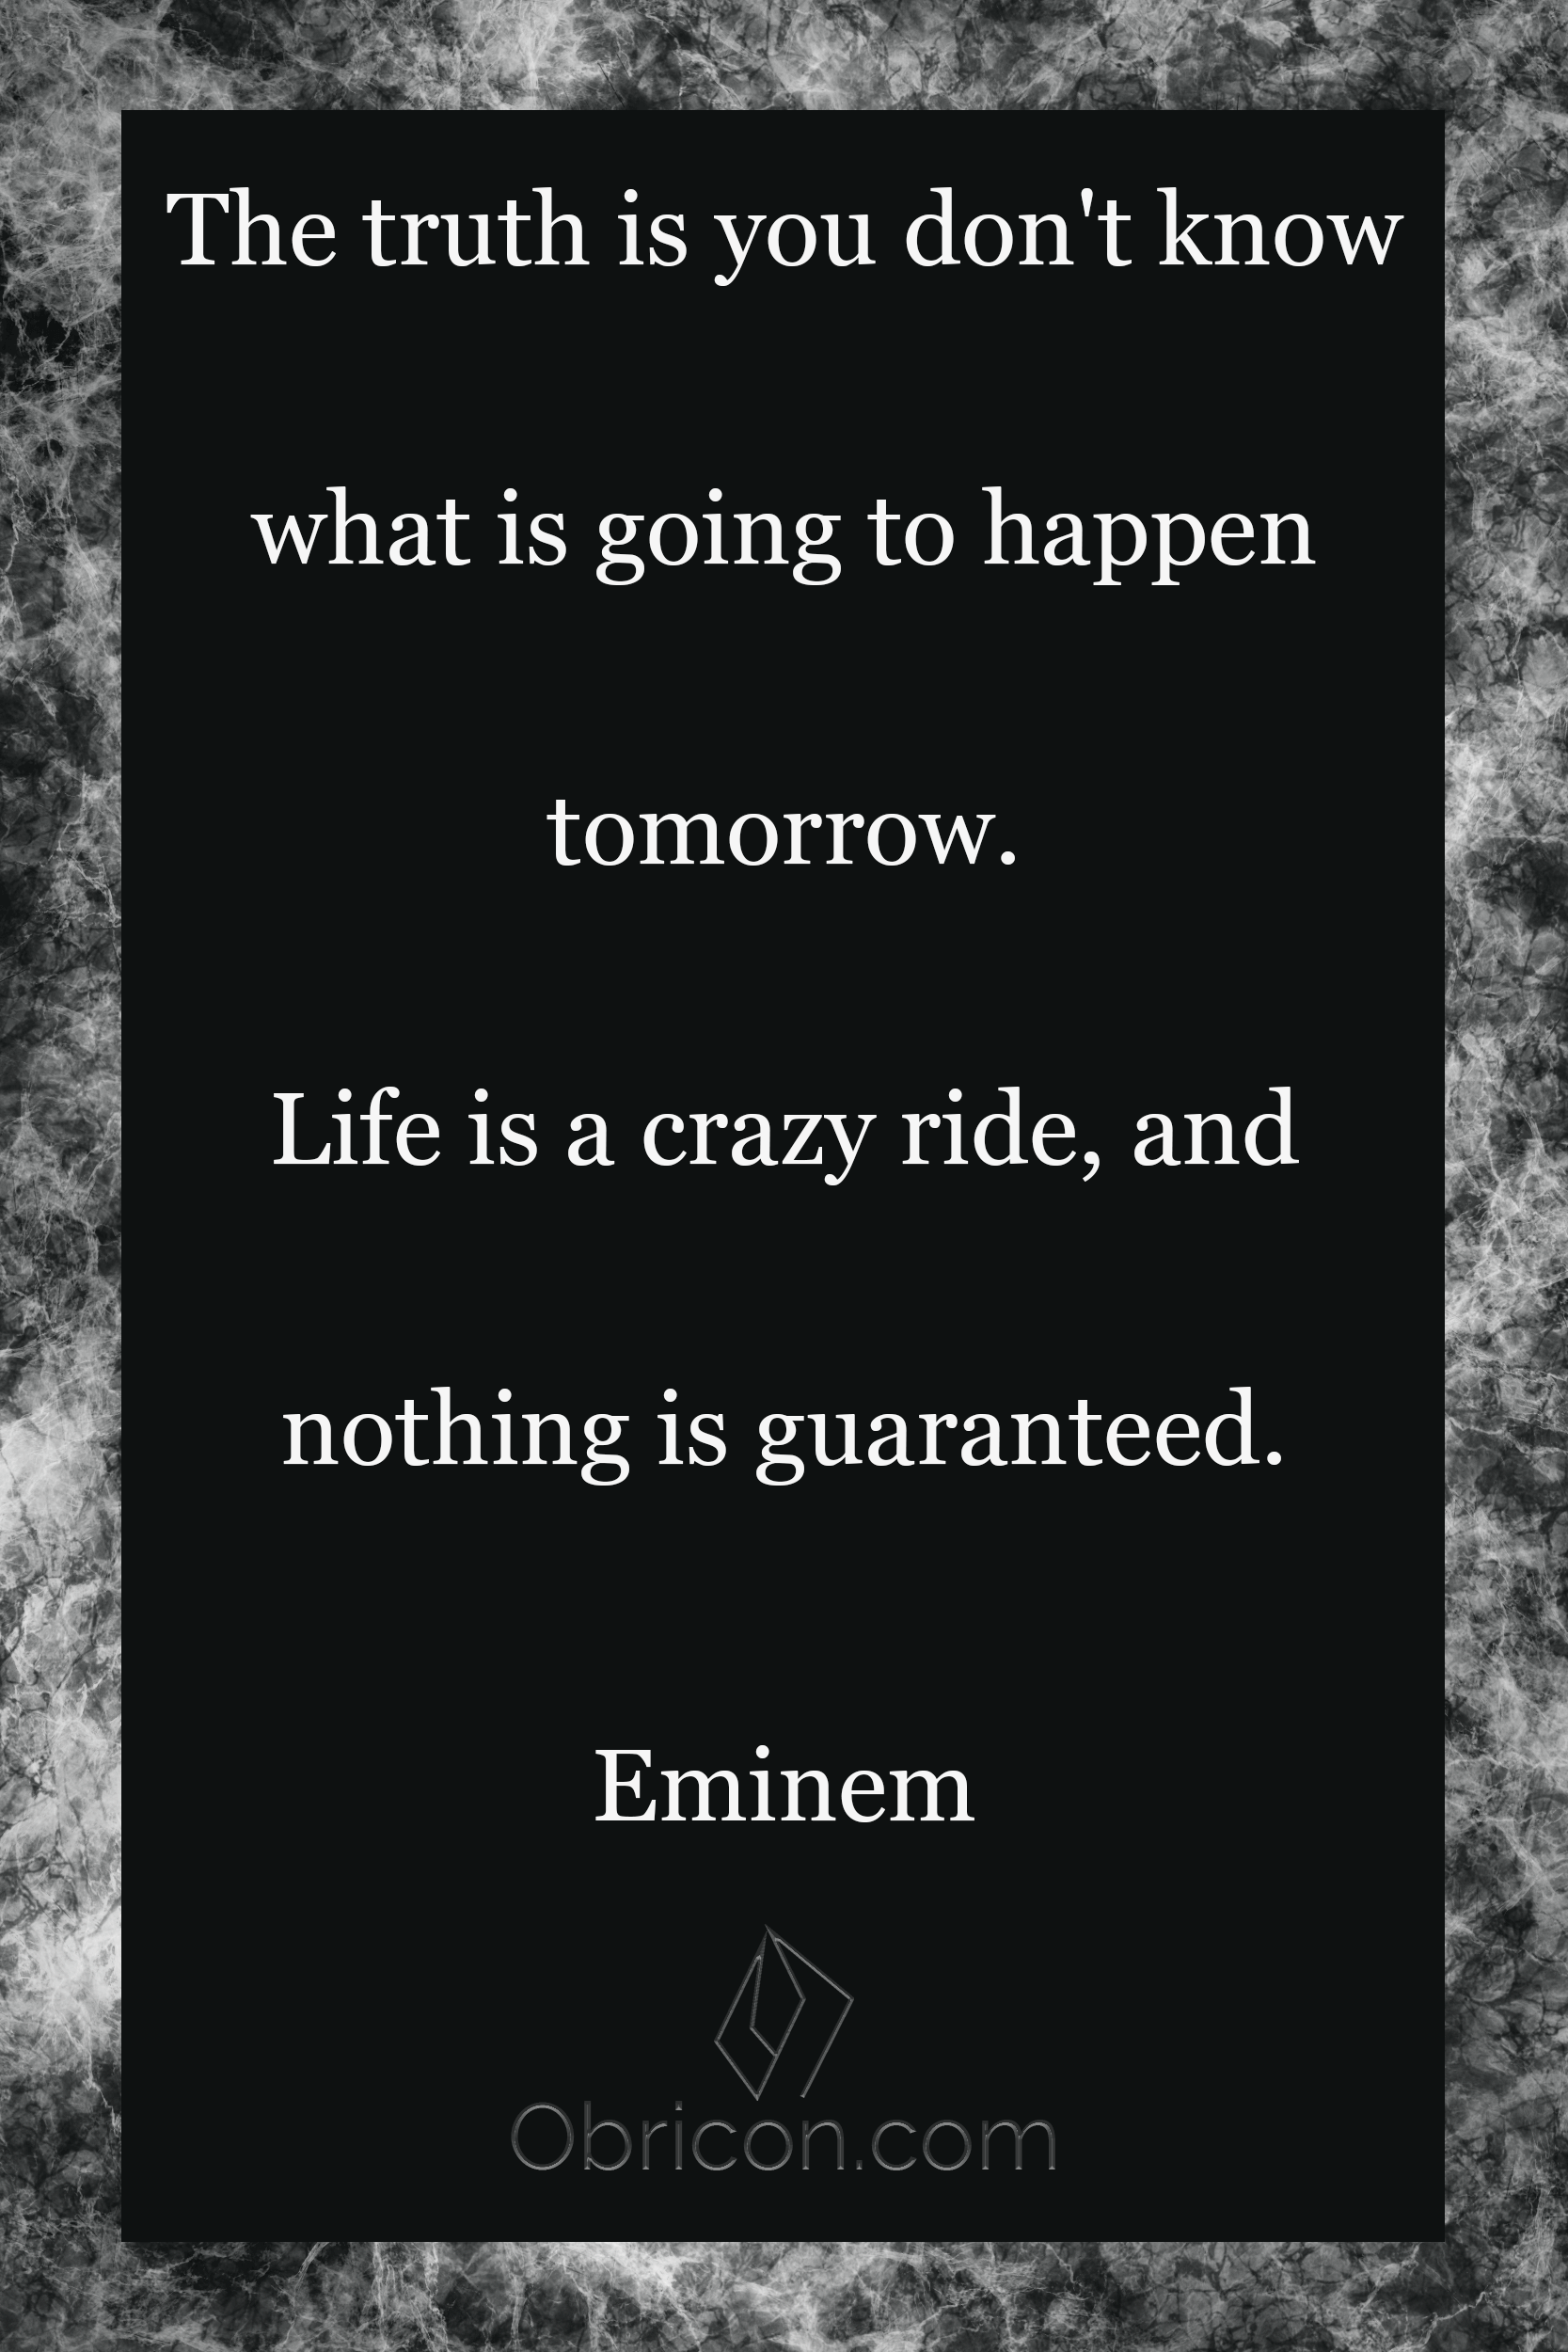 The truth is you don't know what is going to happen tomorrow. Life is a crazy ride, and nothing is guaranteed. Eminem.png